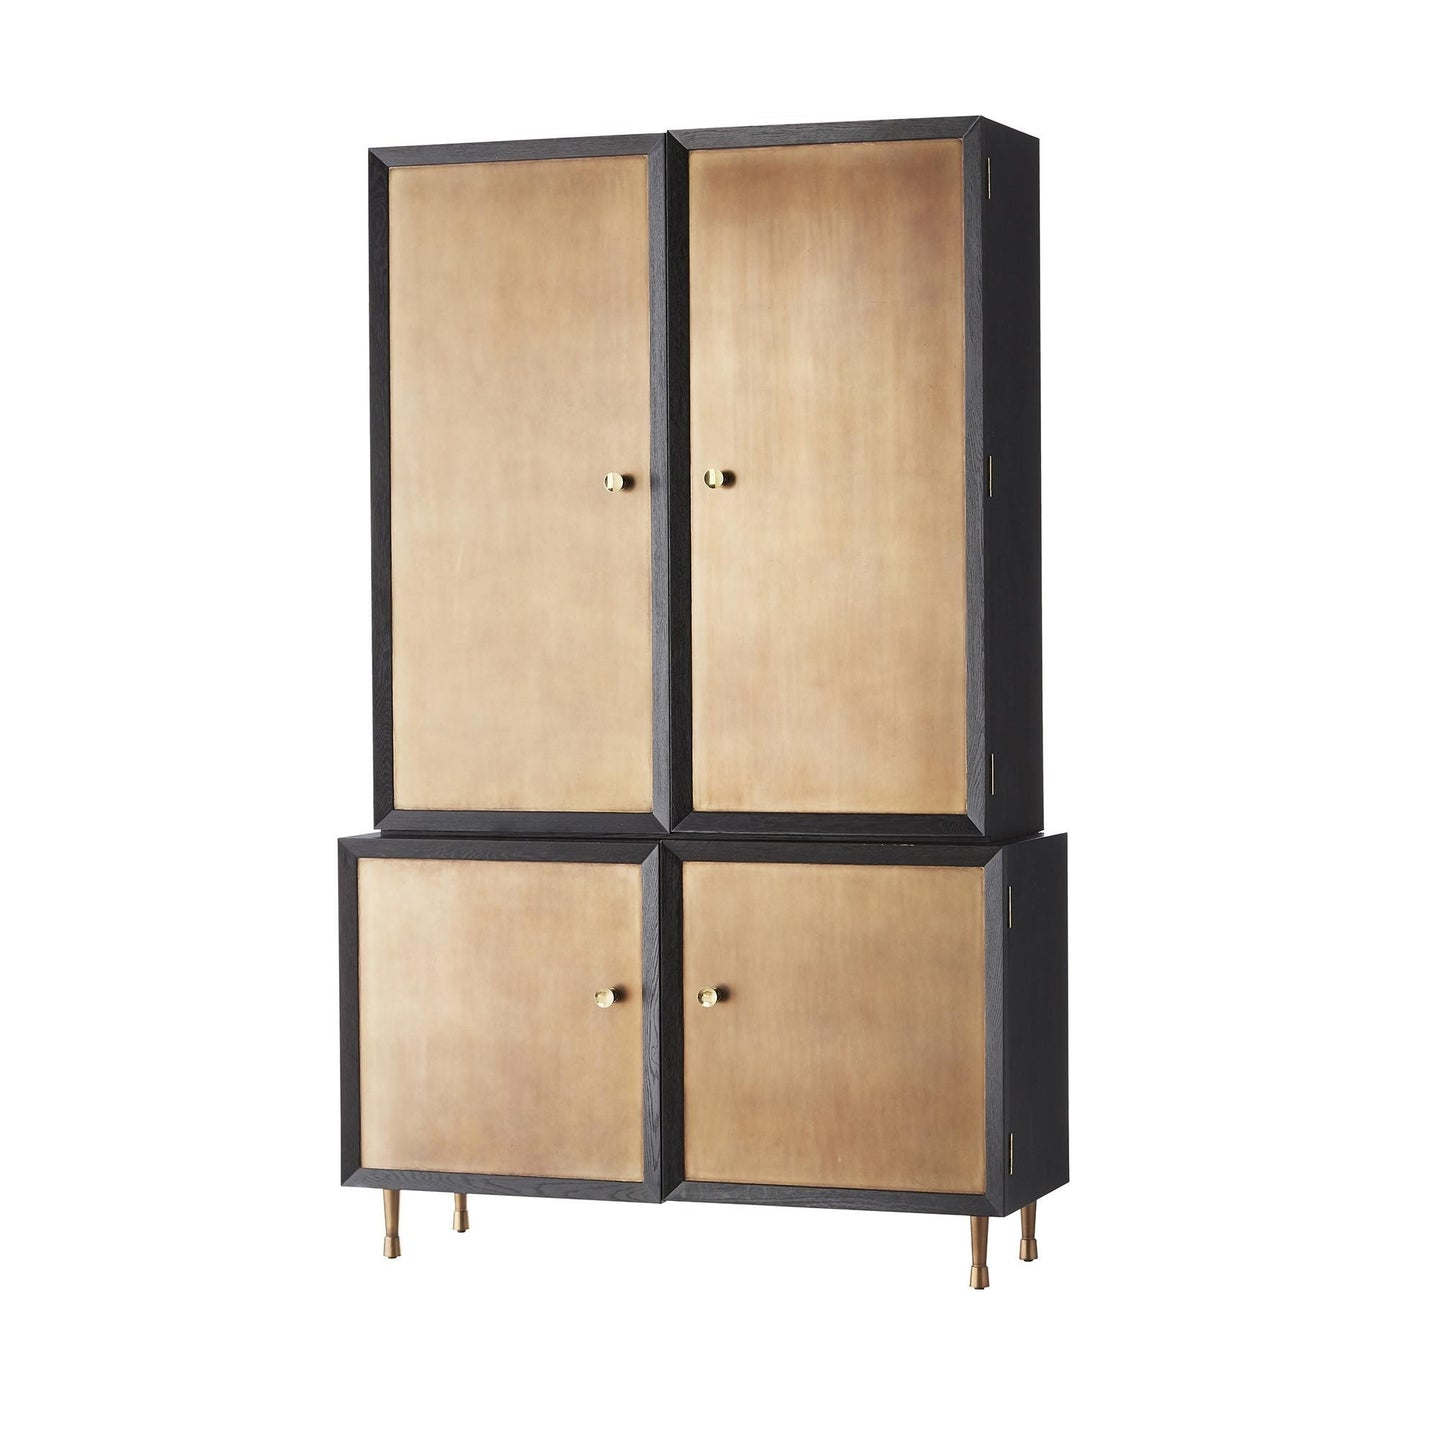 kitchen shelves depot units size doors storage tall with free home shelving of full and furniture cabinet pantry standing cabinets